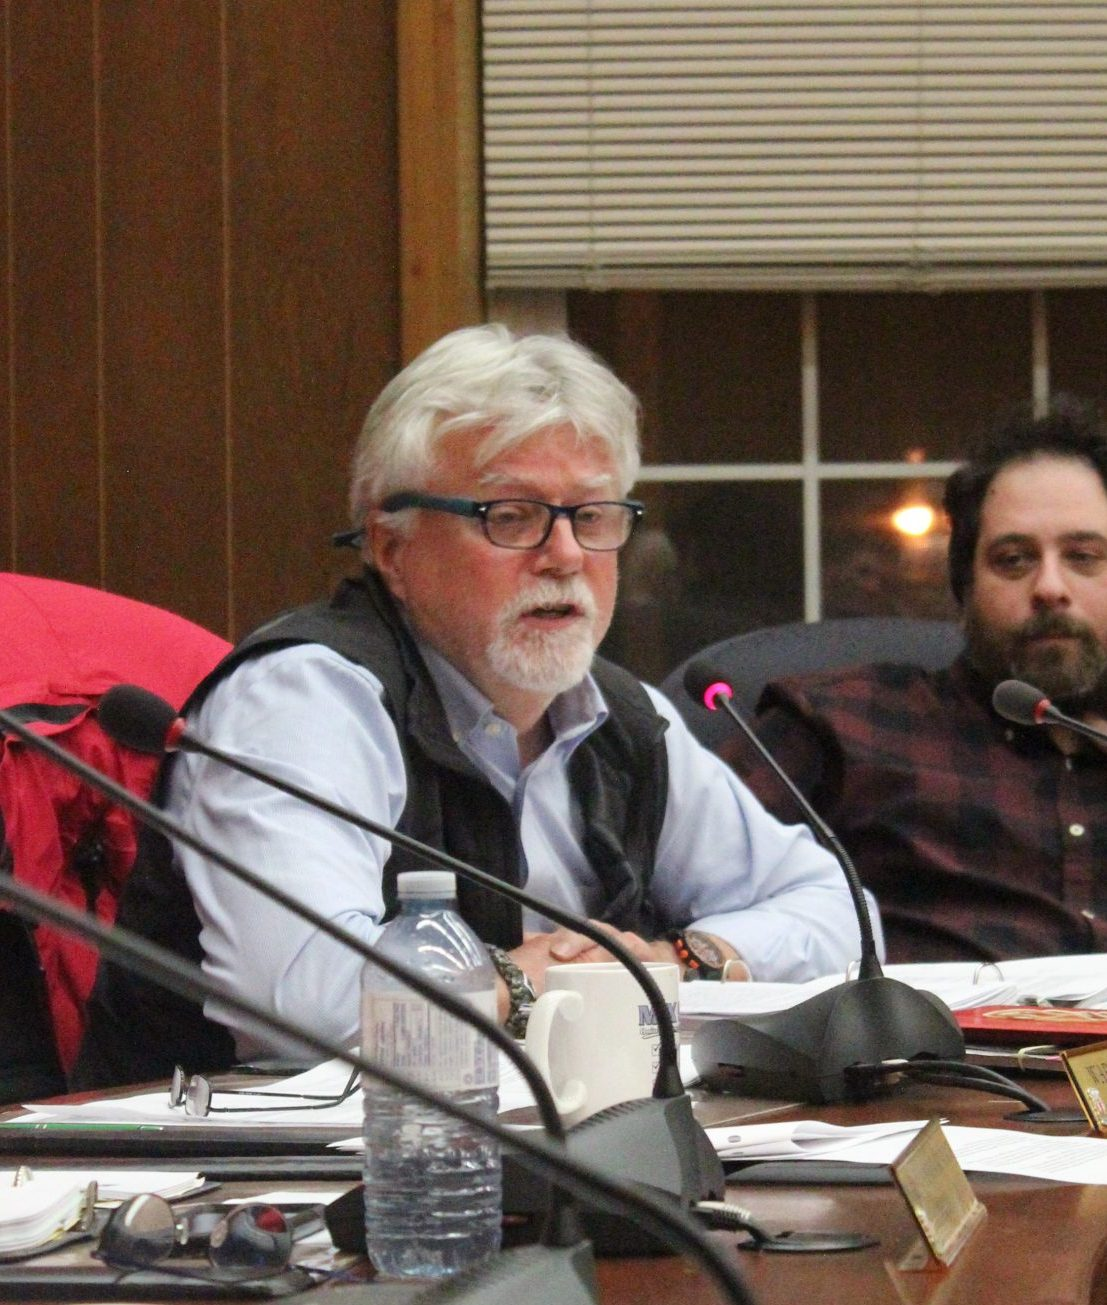 Prince Edward County councillor reprimanded for actions